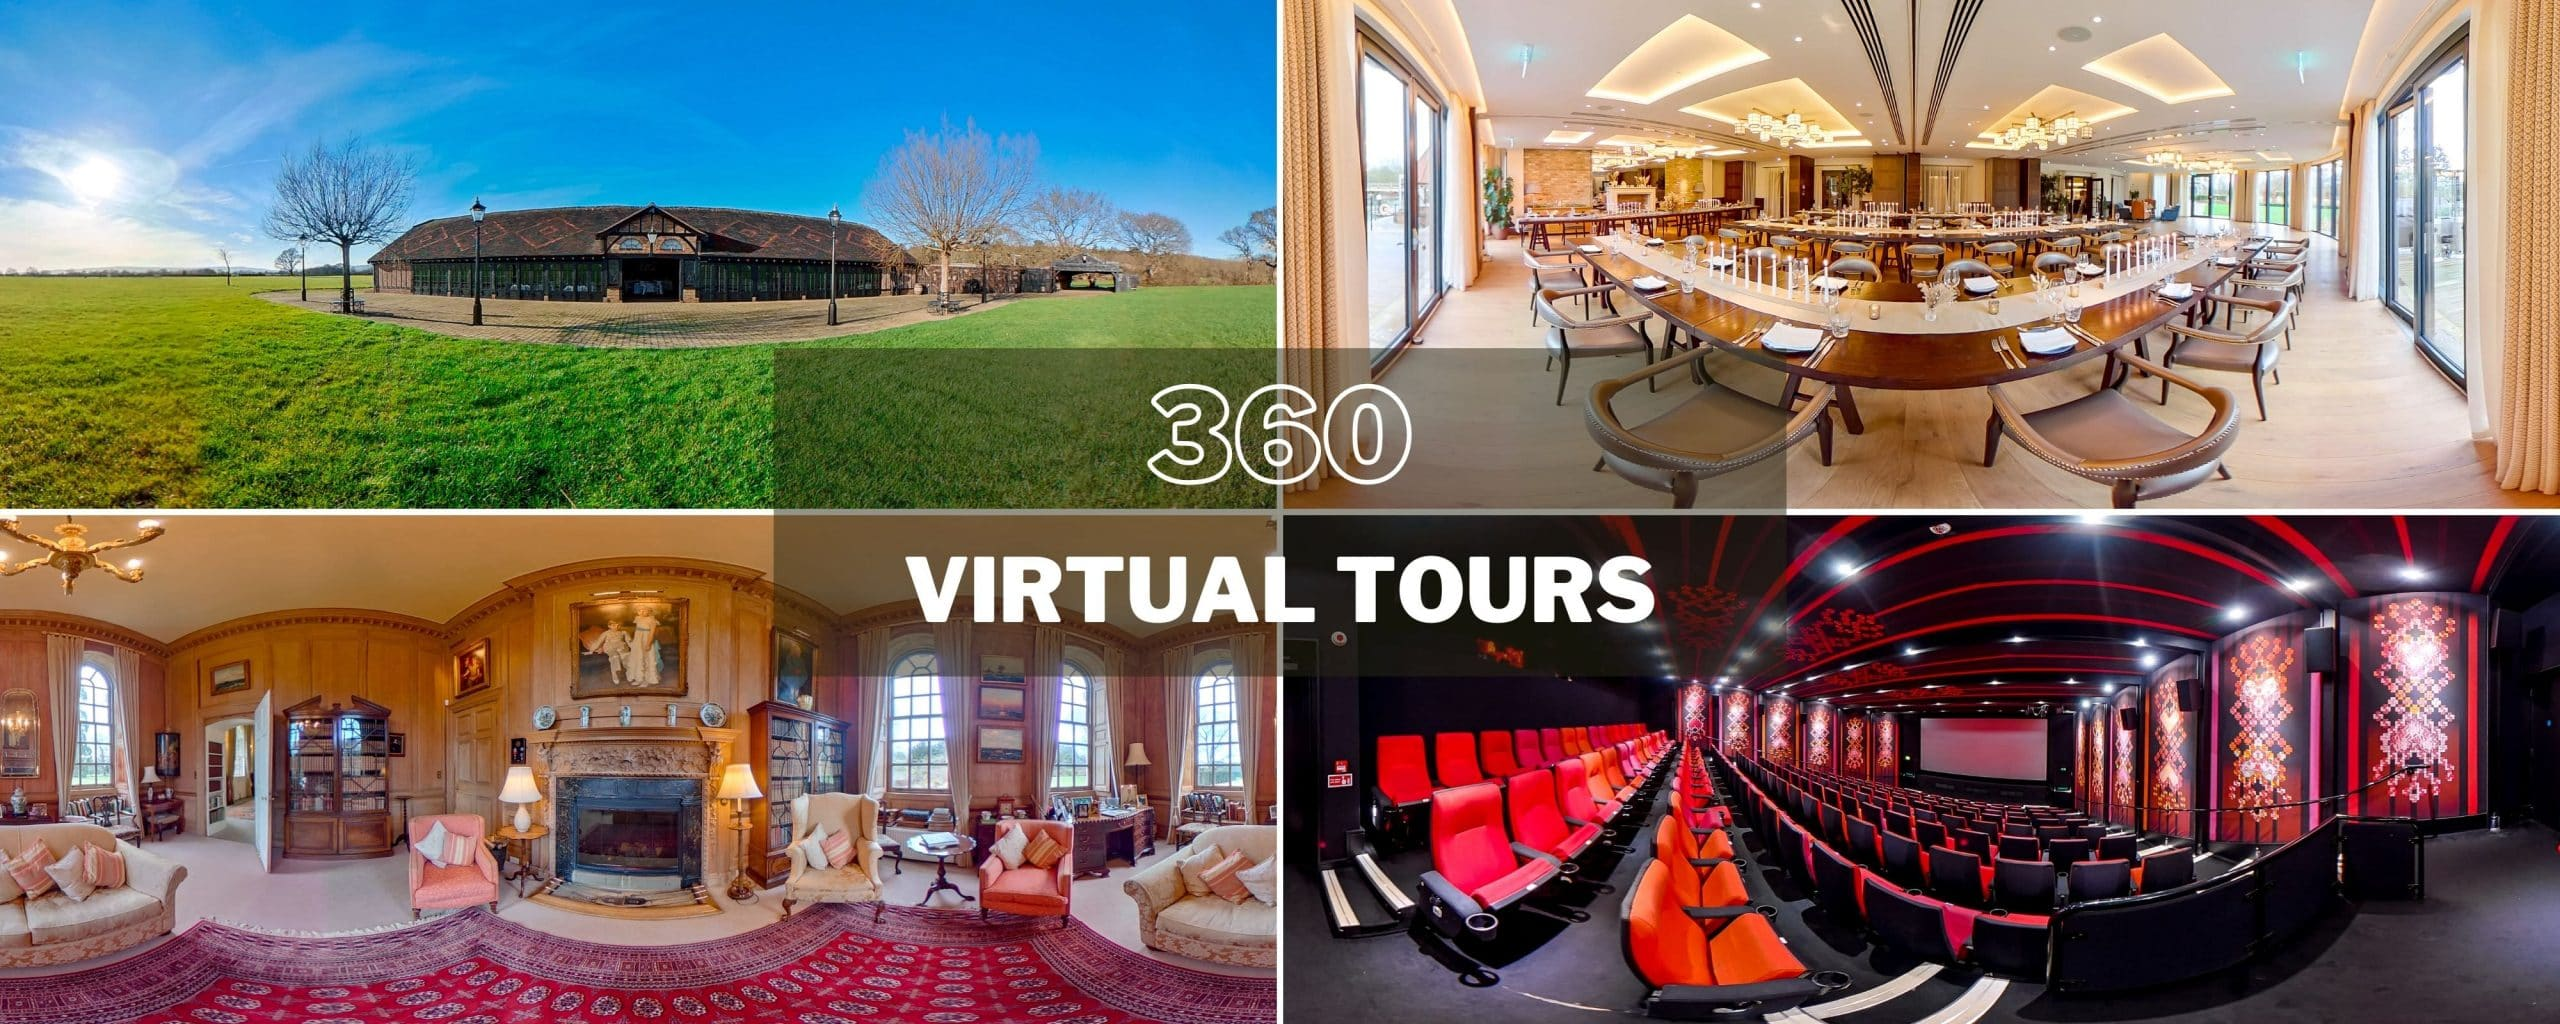 selection of images of 360 virtual tours